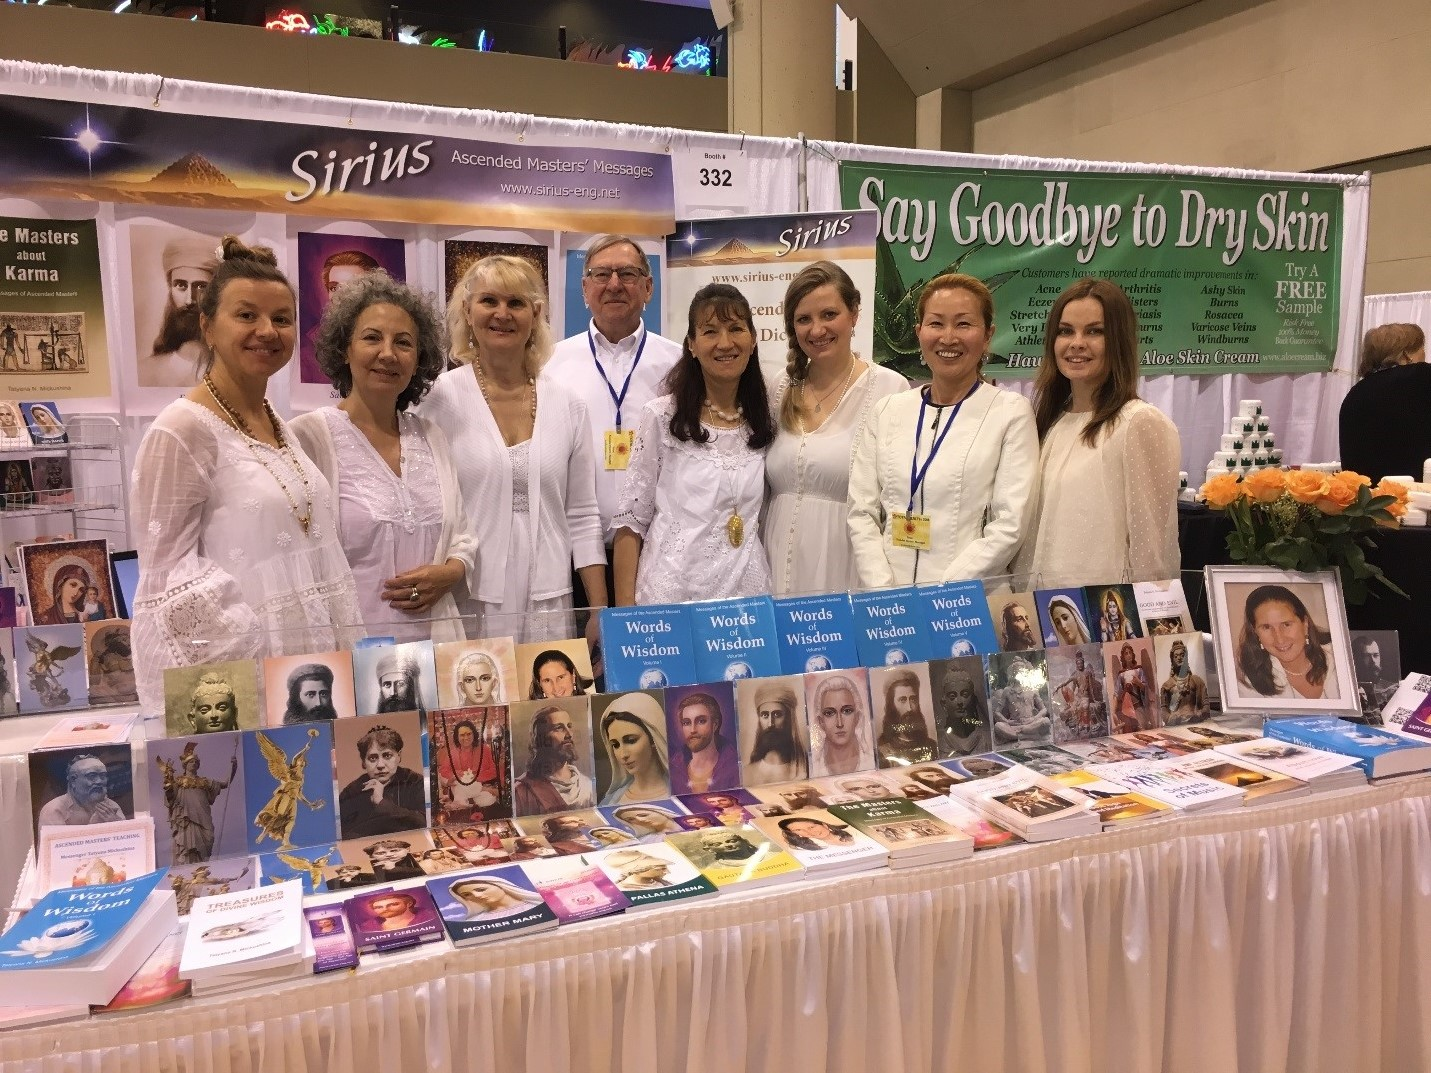 The books of Tatyana N. Mickushina have been presented at New Living Expo, April 27-29, 2018